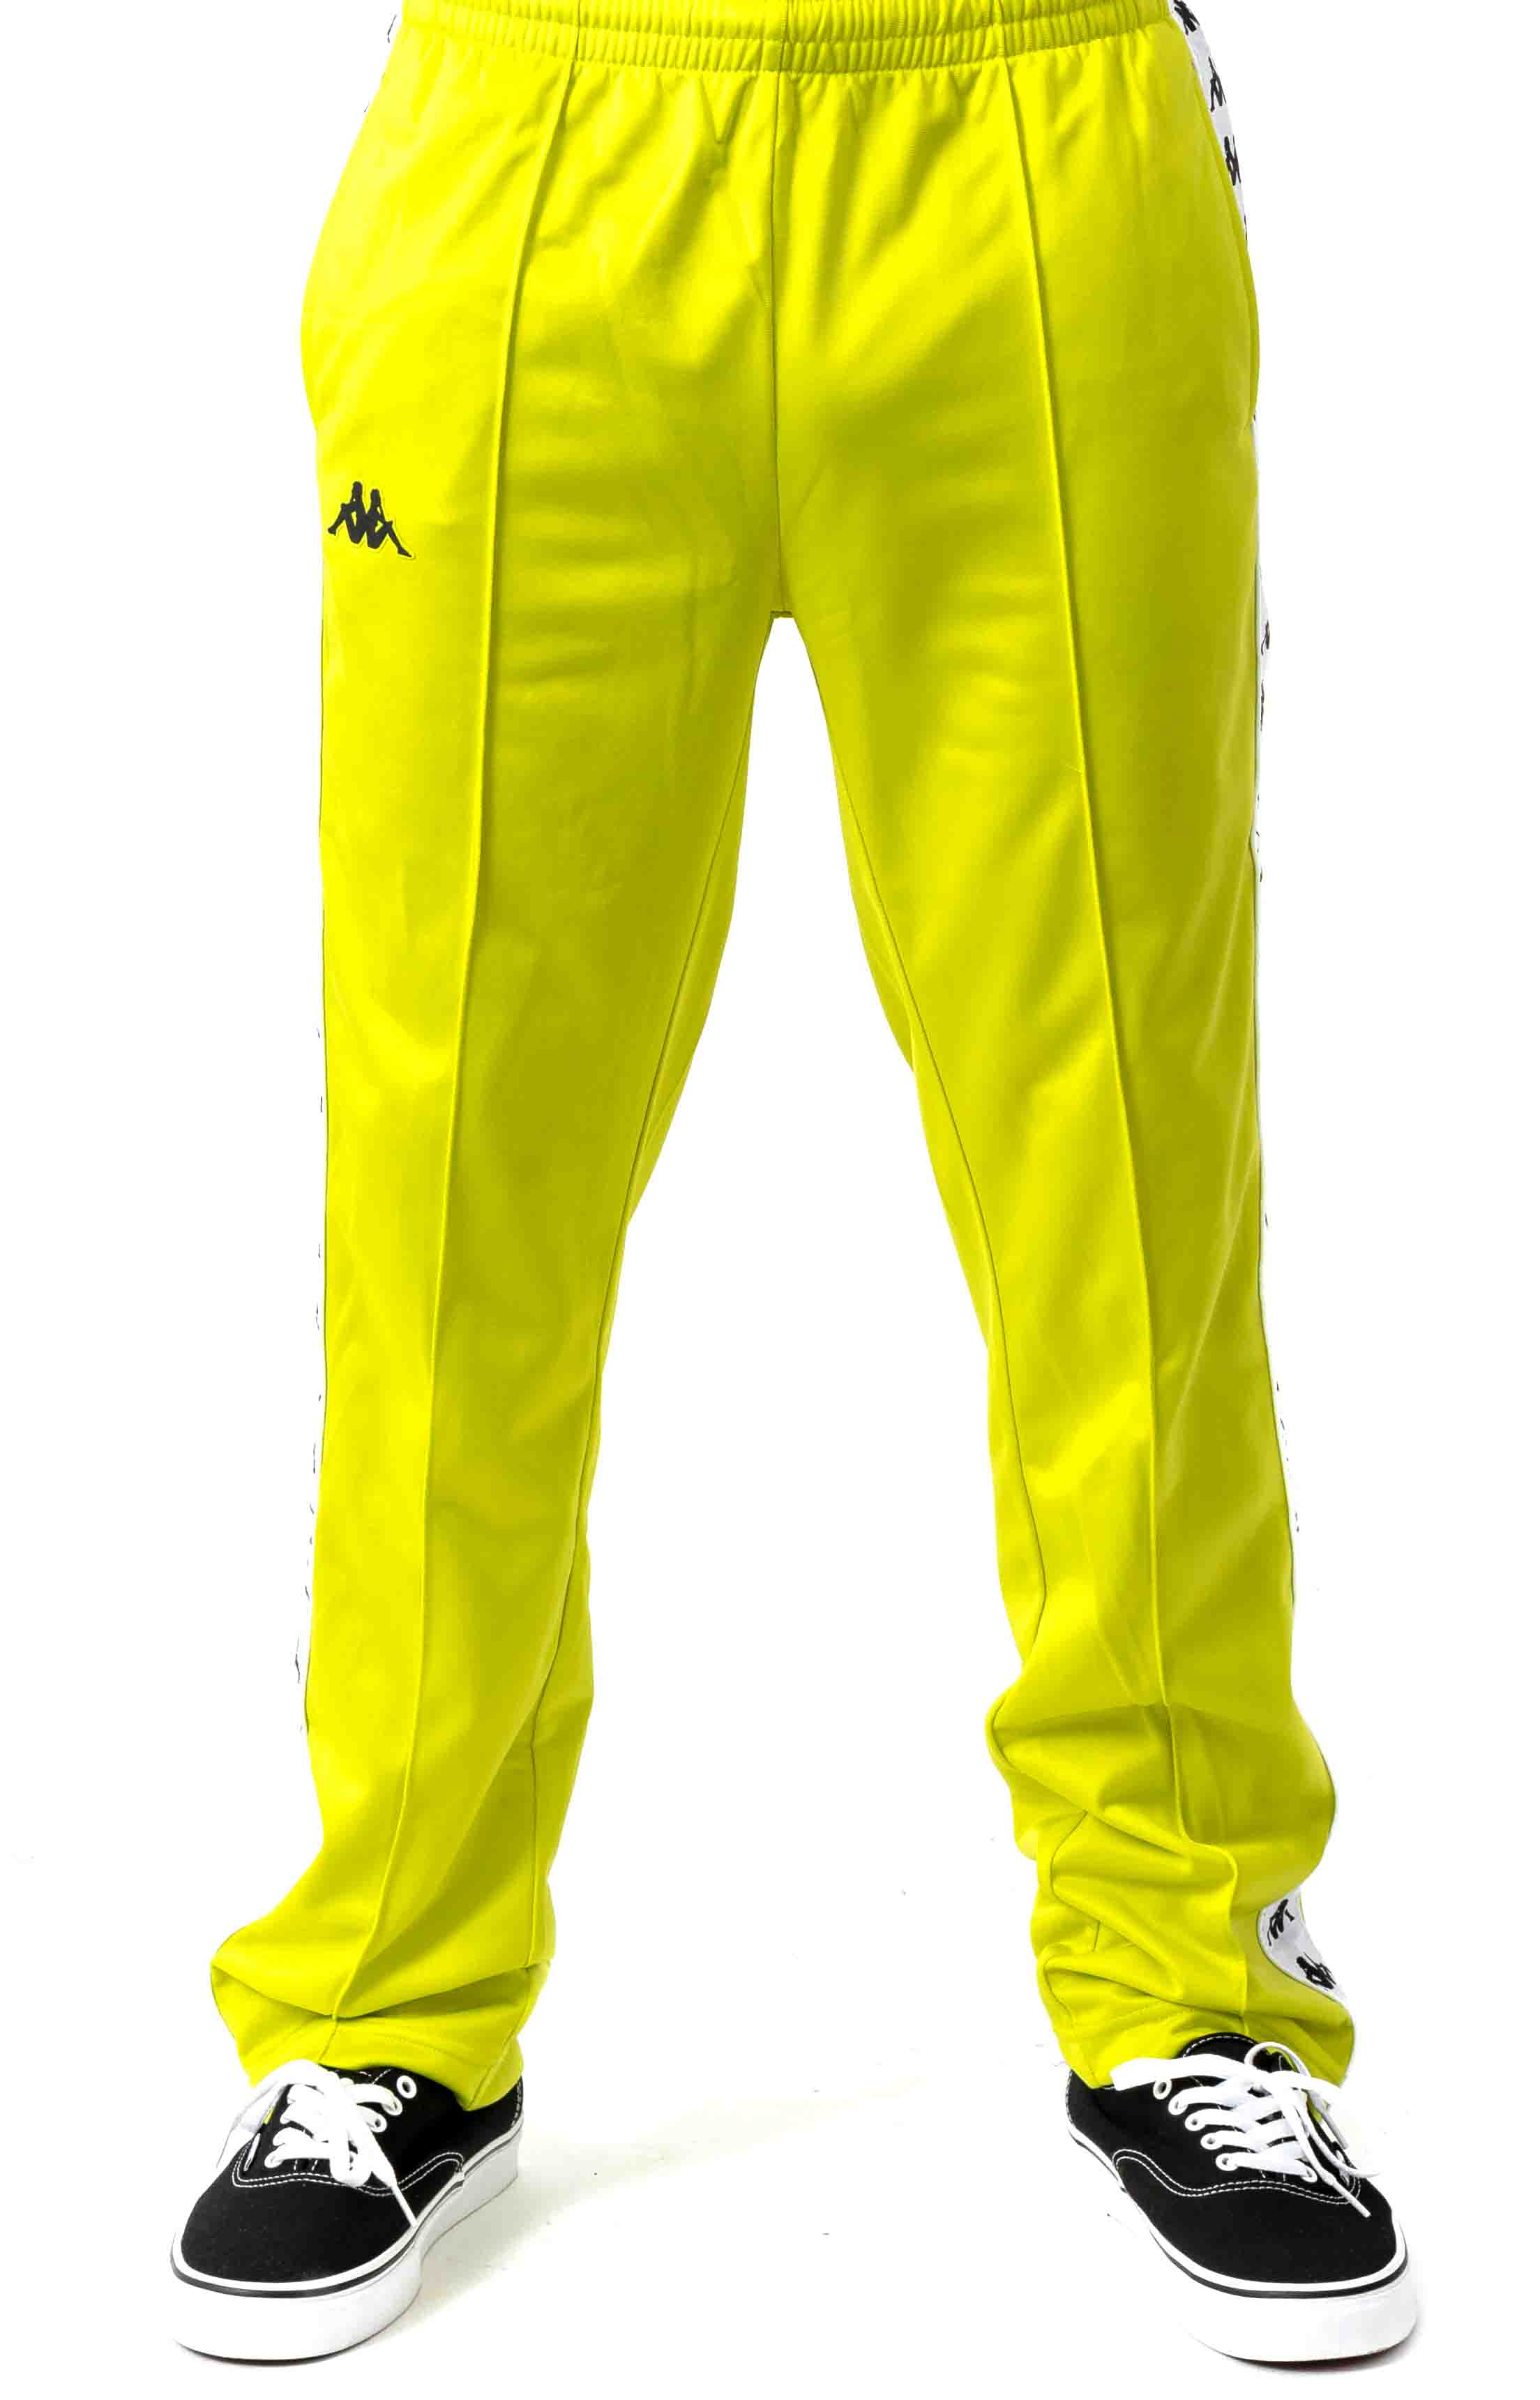 222 Banda Astoriazz Trackpant - Lime Green  2